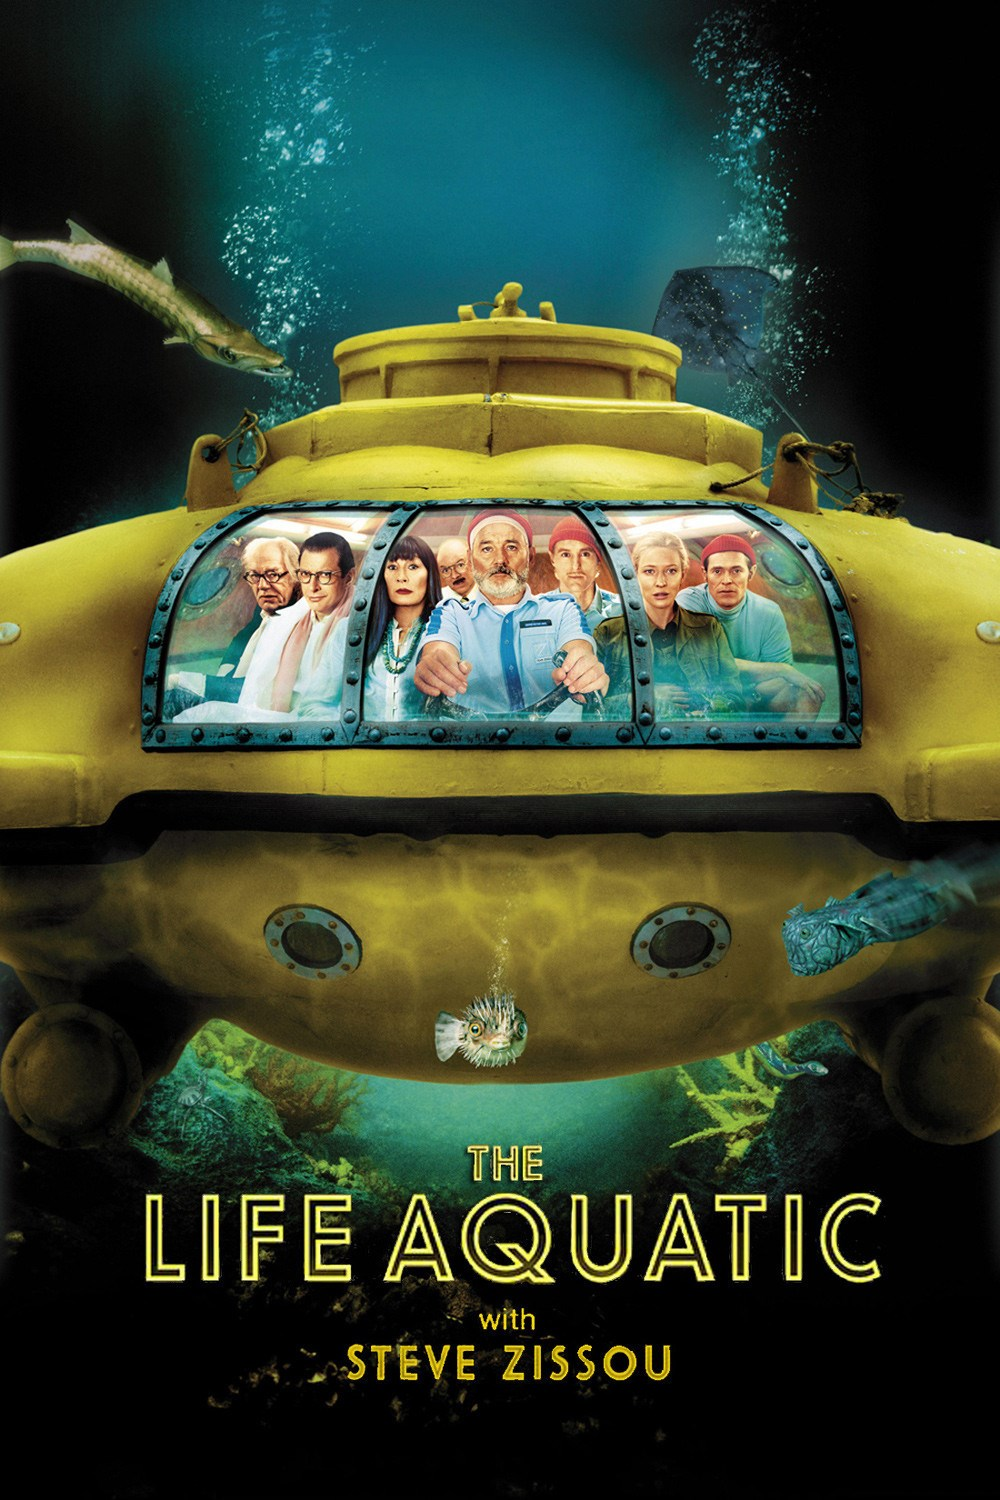 The Life Aquatic With Steve Zissou The Criterion Collection Movie free download HD 720p